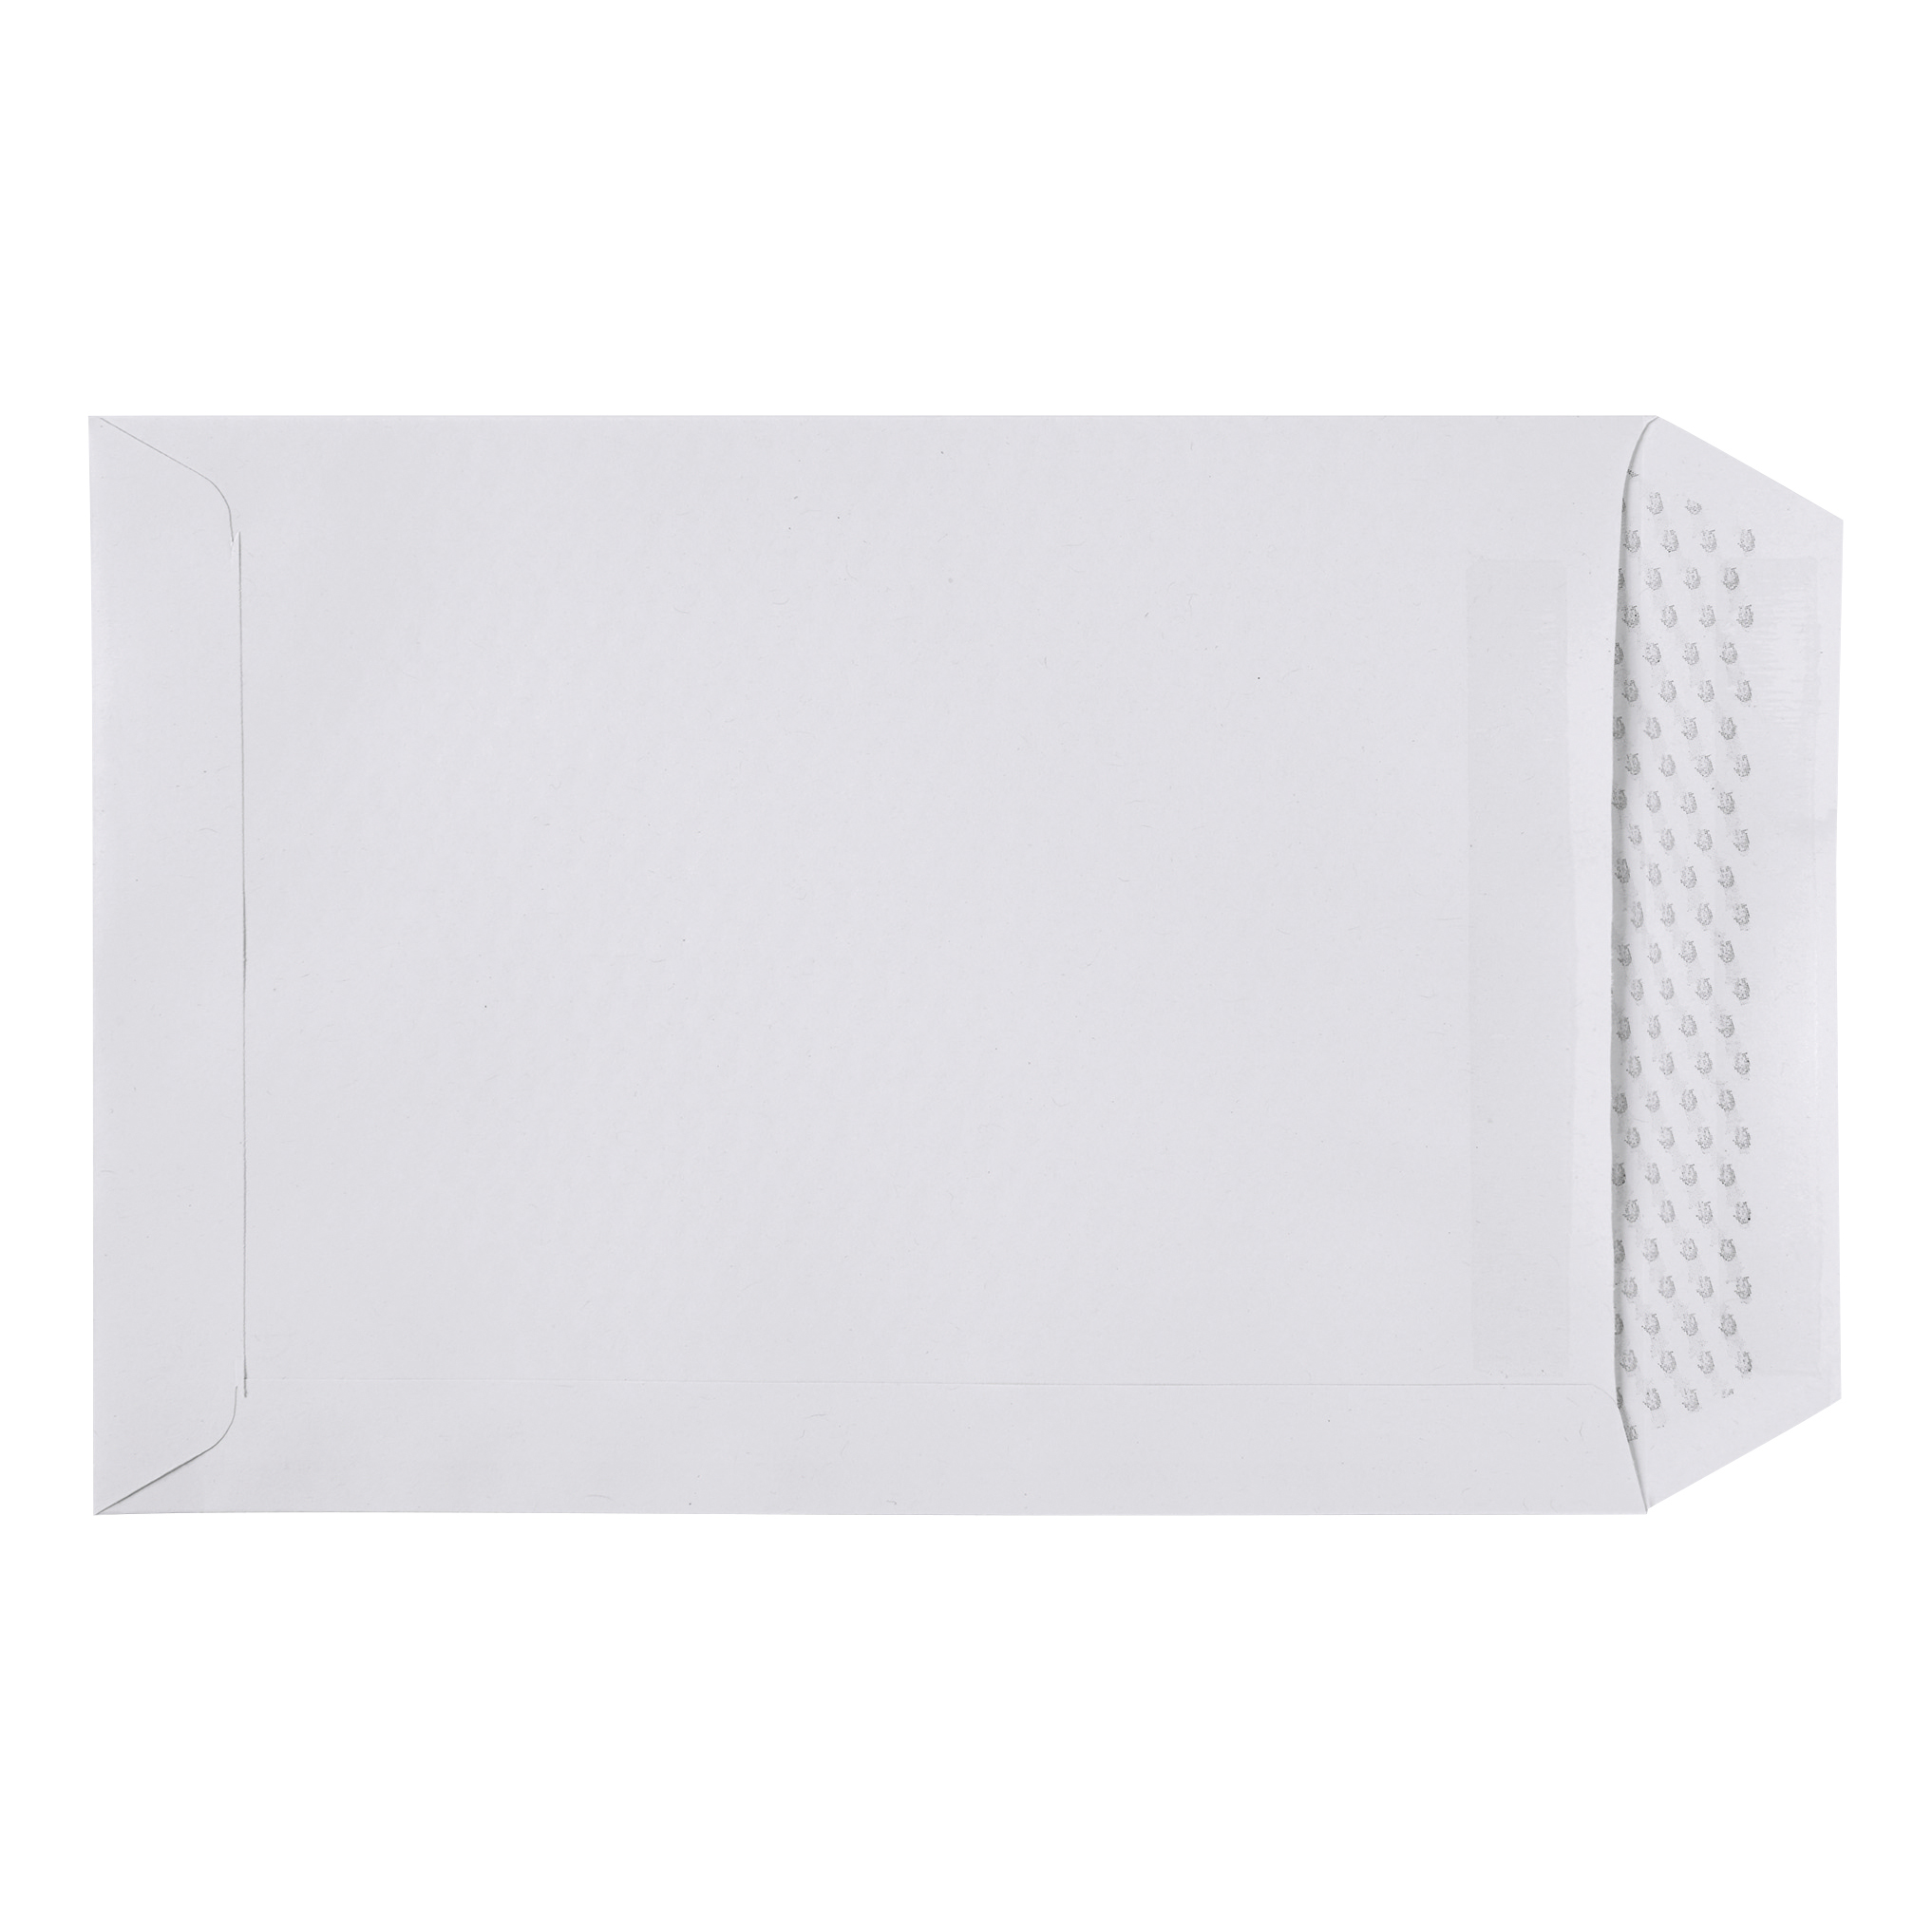 Image for 5 Star Eco Envelopes C5 Recycled Pocket Self Seal 90gsm White [Pack 500] (0)